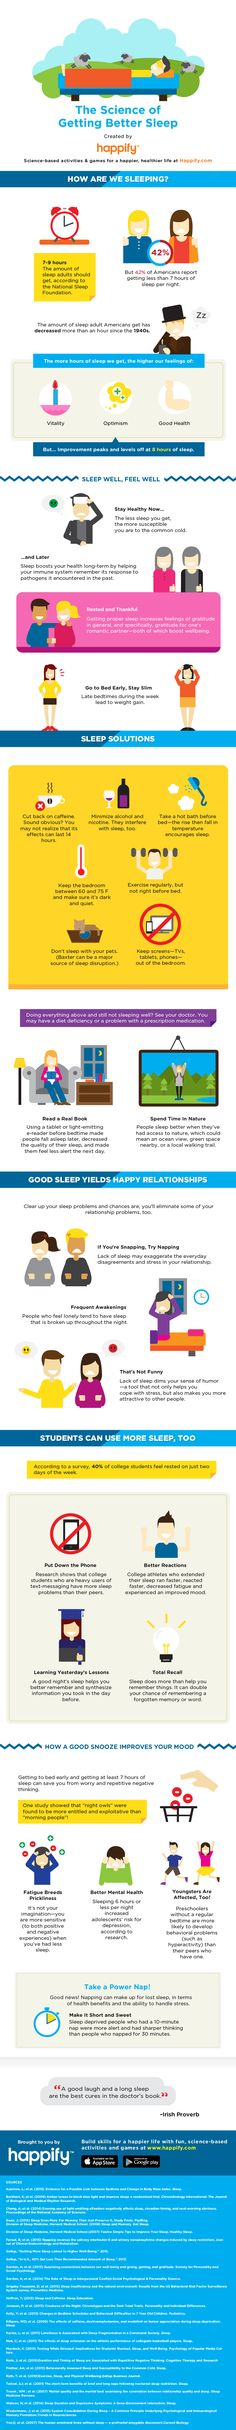 INFOGRAPHIC: The Science of Getting Better Sleep